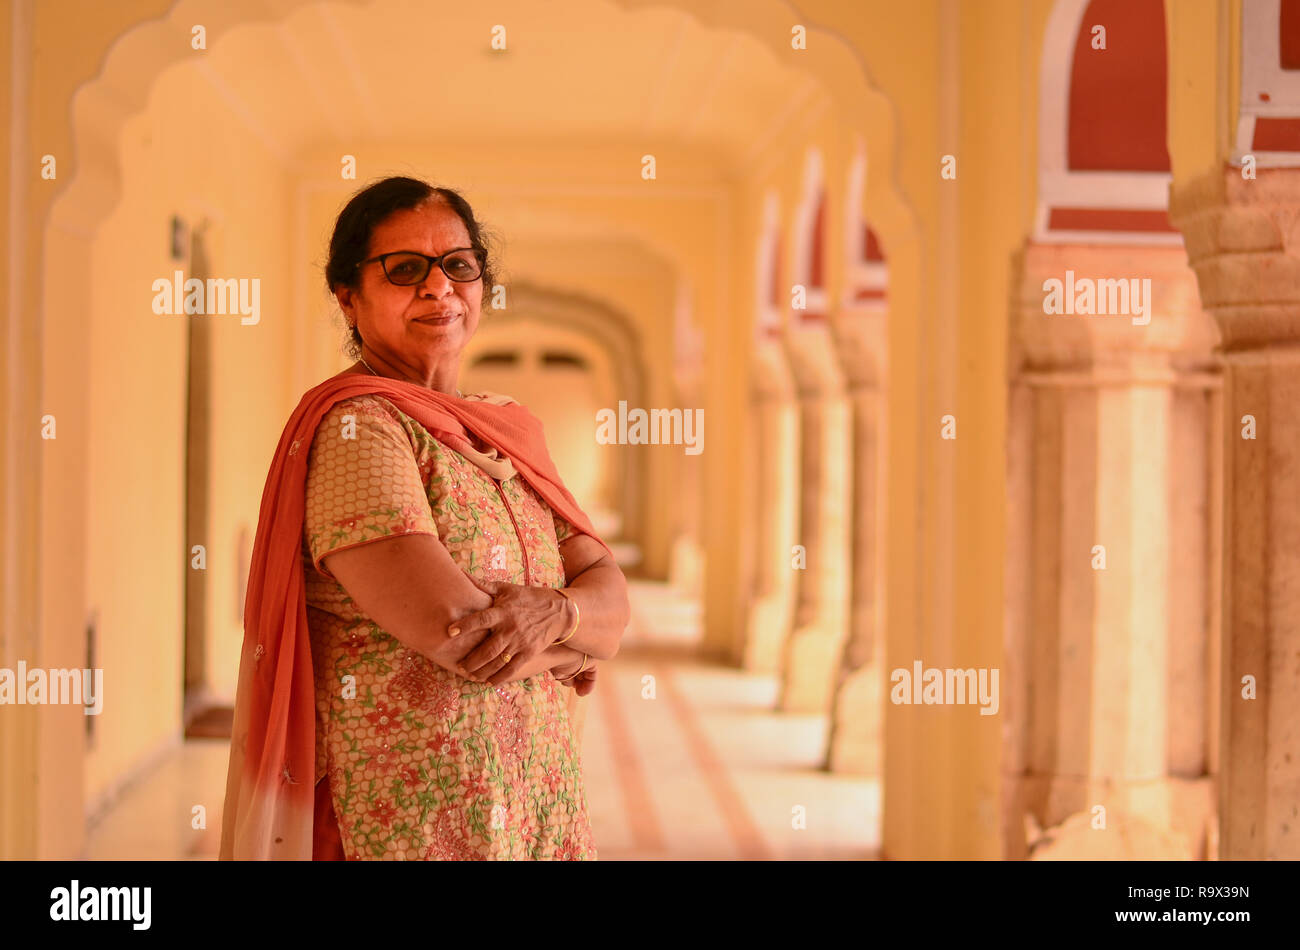 Happy looking senior Indian lady wearing traditional suit posing in the corridor of Jaipur's City Palace. - Stock Image